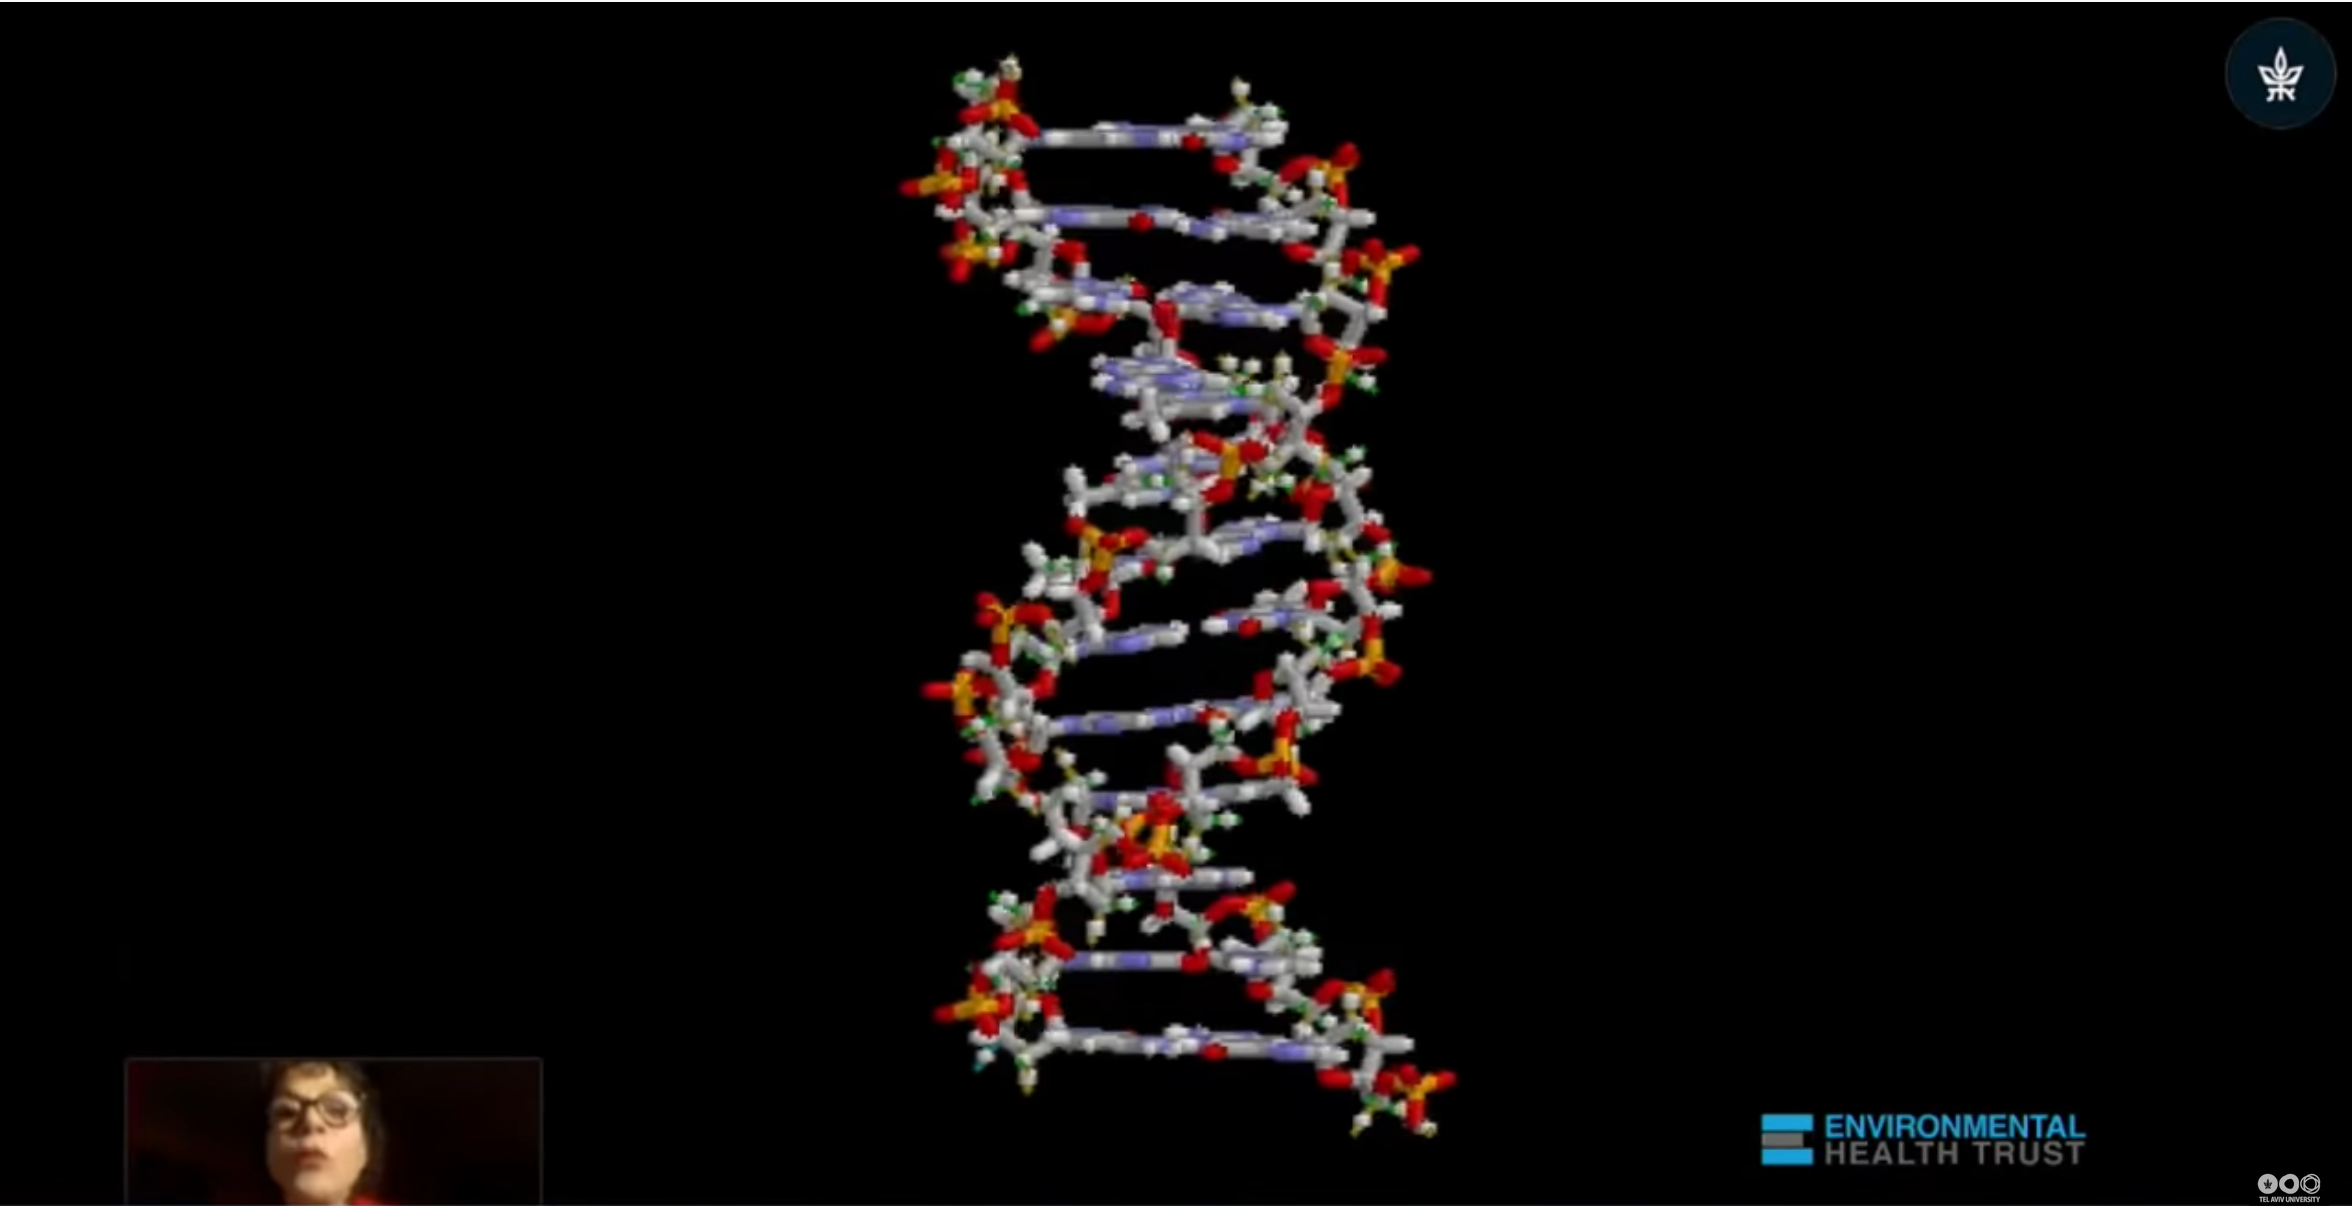 dna-strand-affected-by-mobilephone-radiation